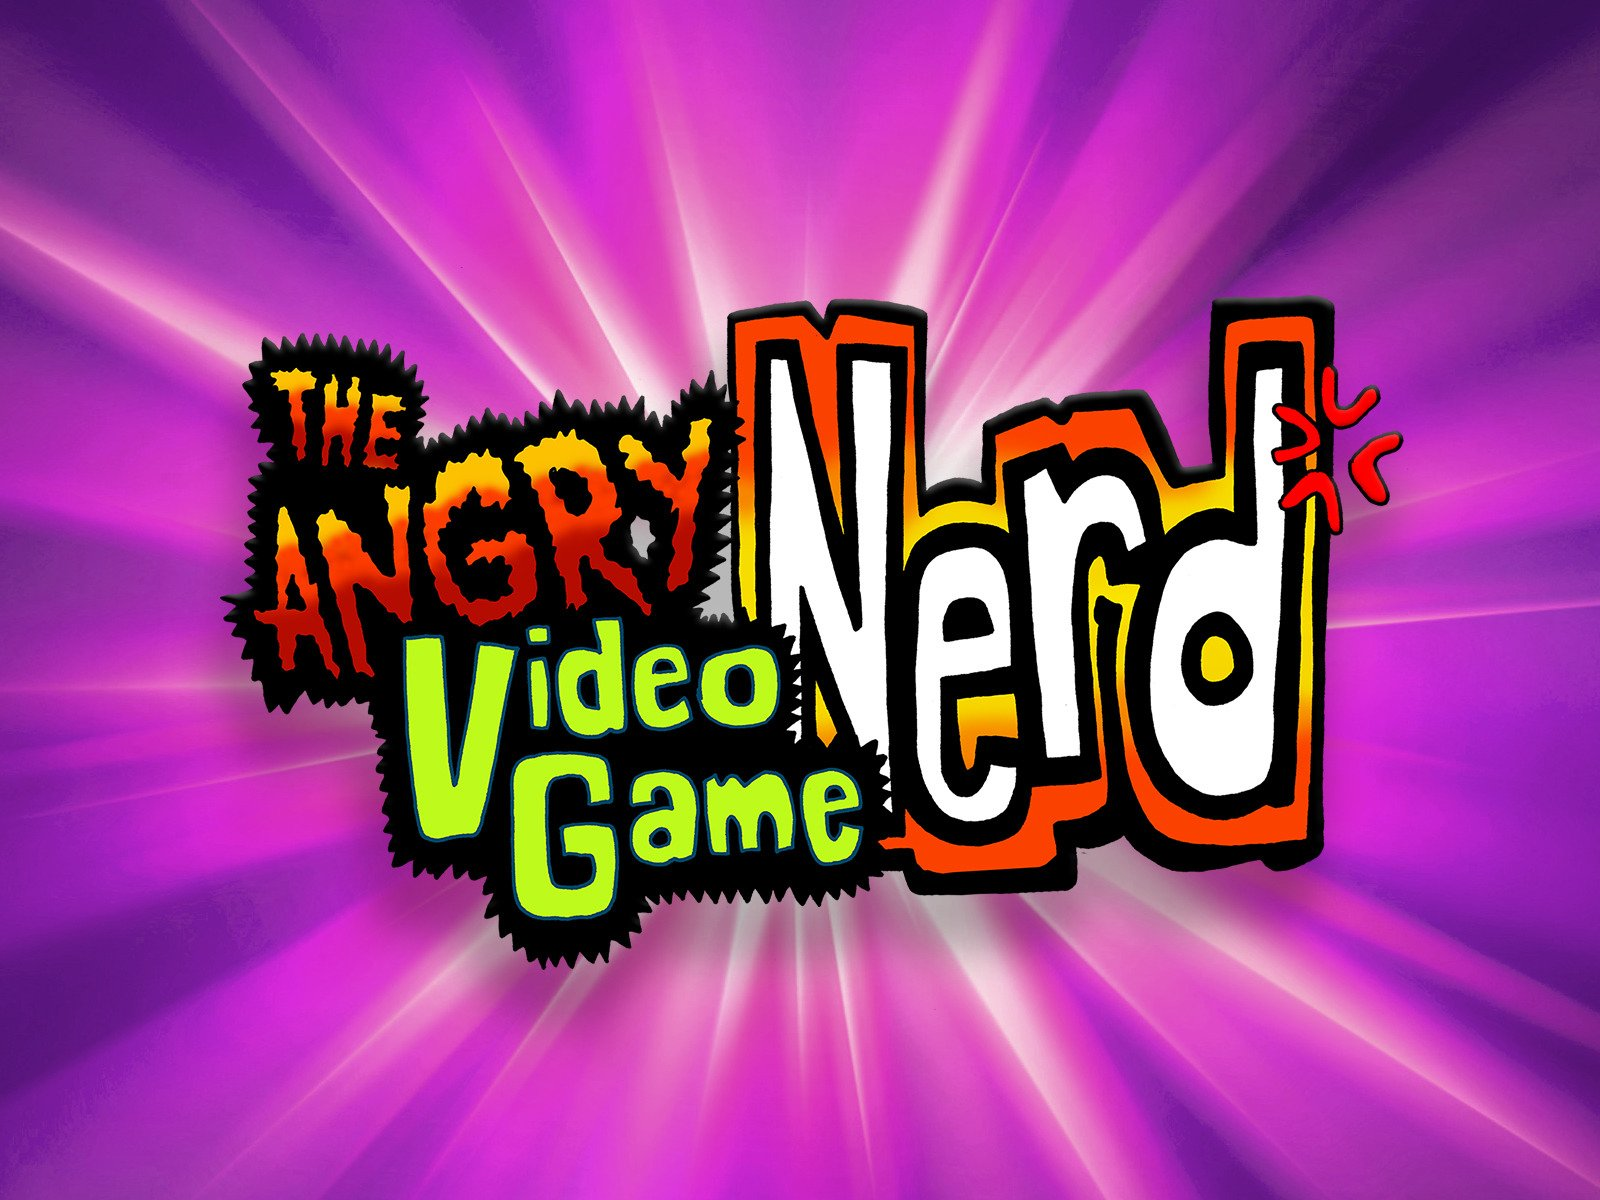 Angry Video Game Nerd - Season 4